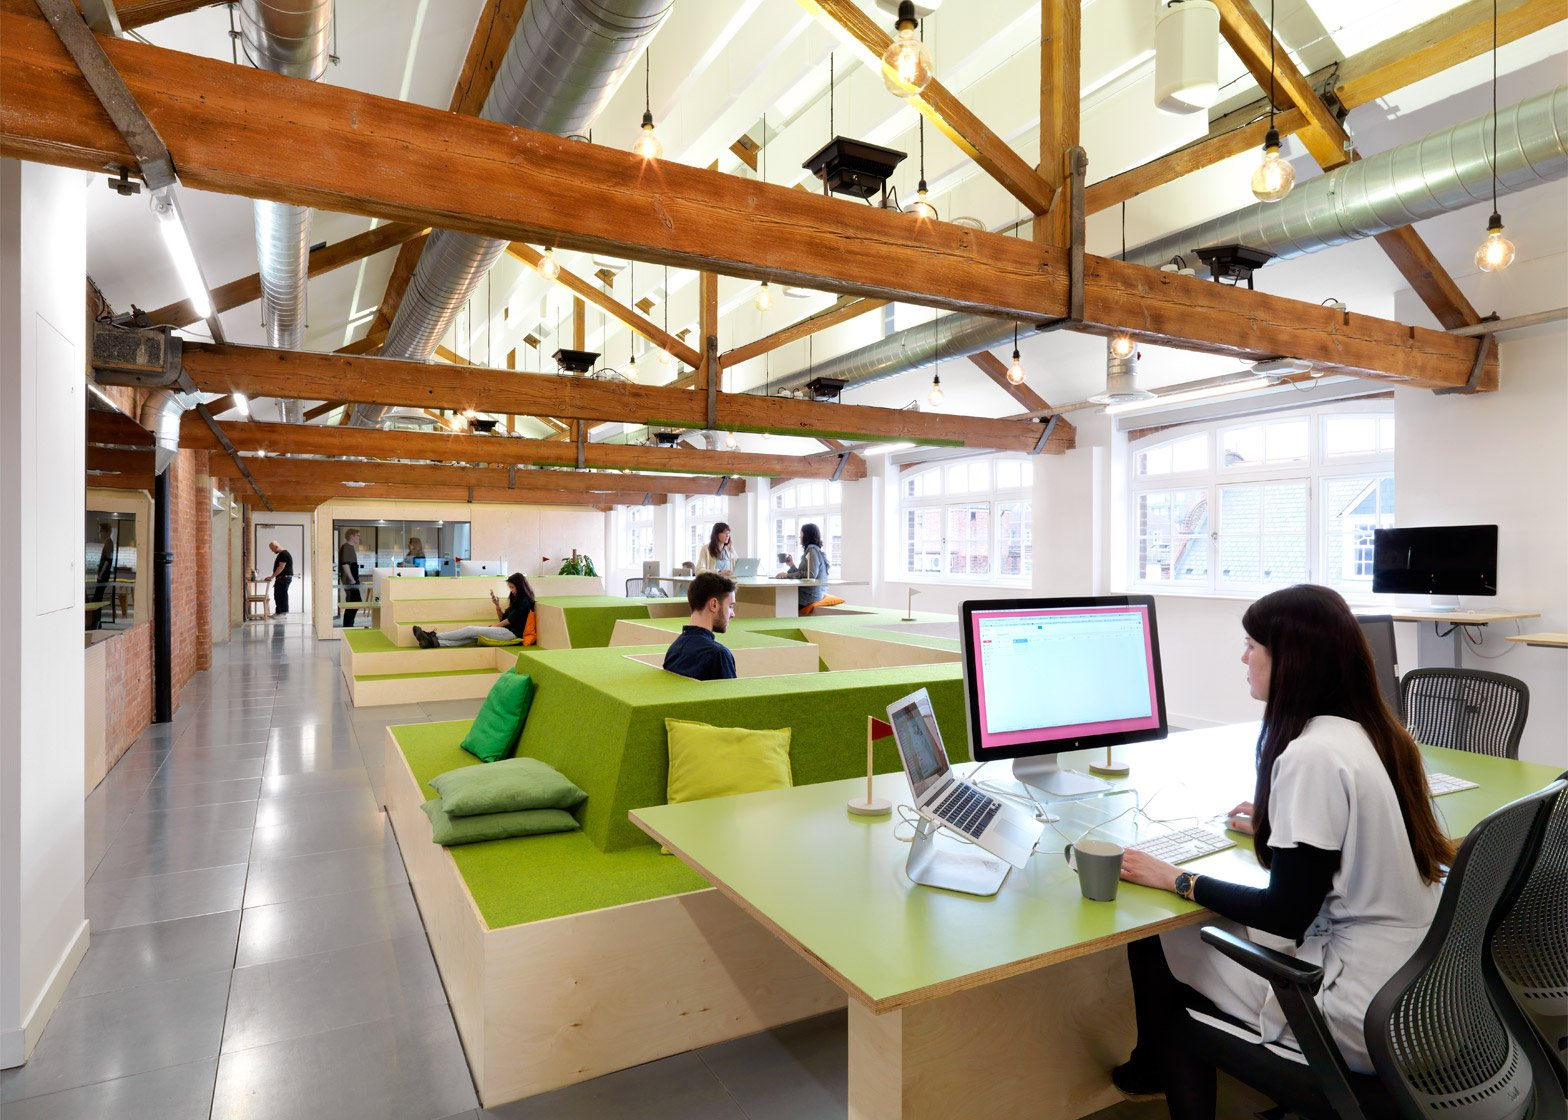 office design is preventing workers concentrating say studies